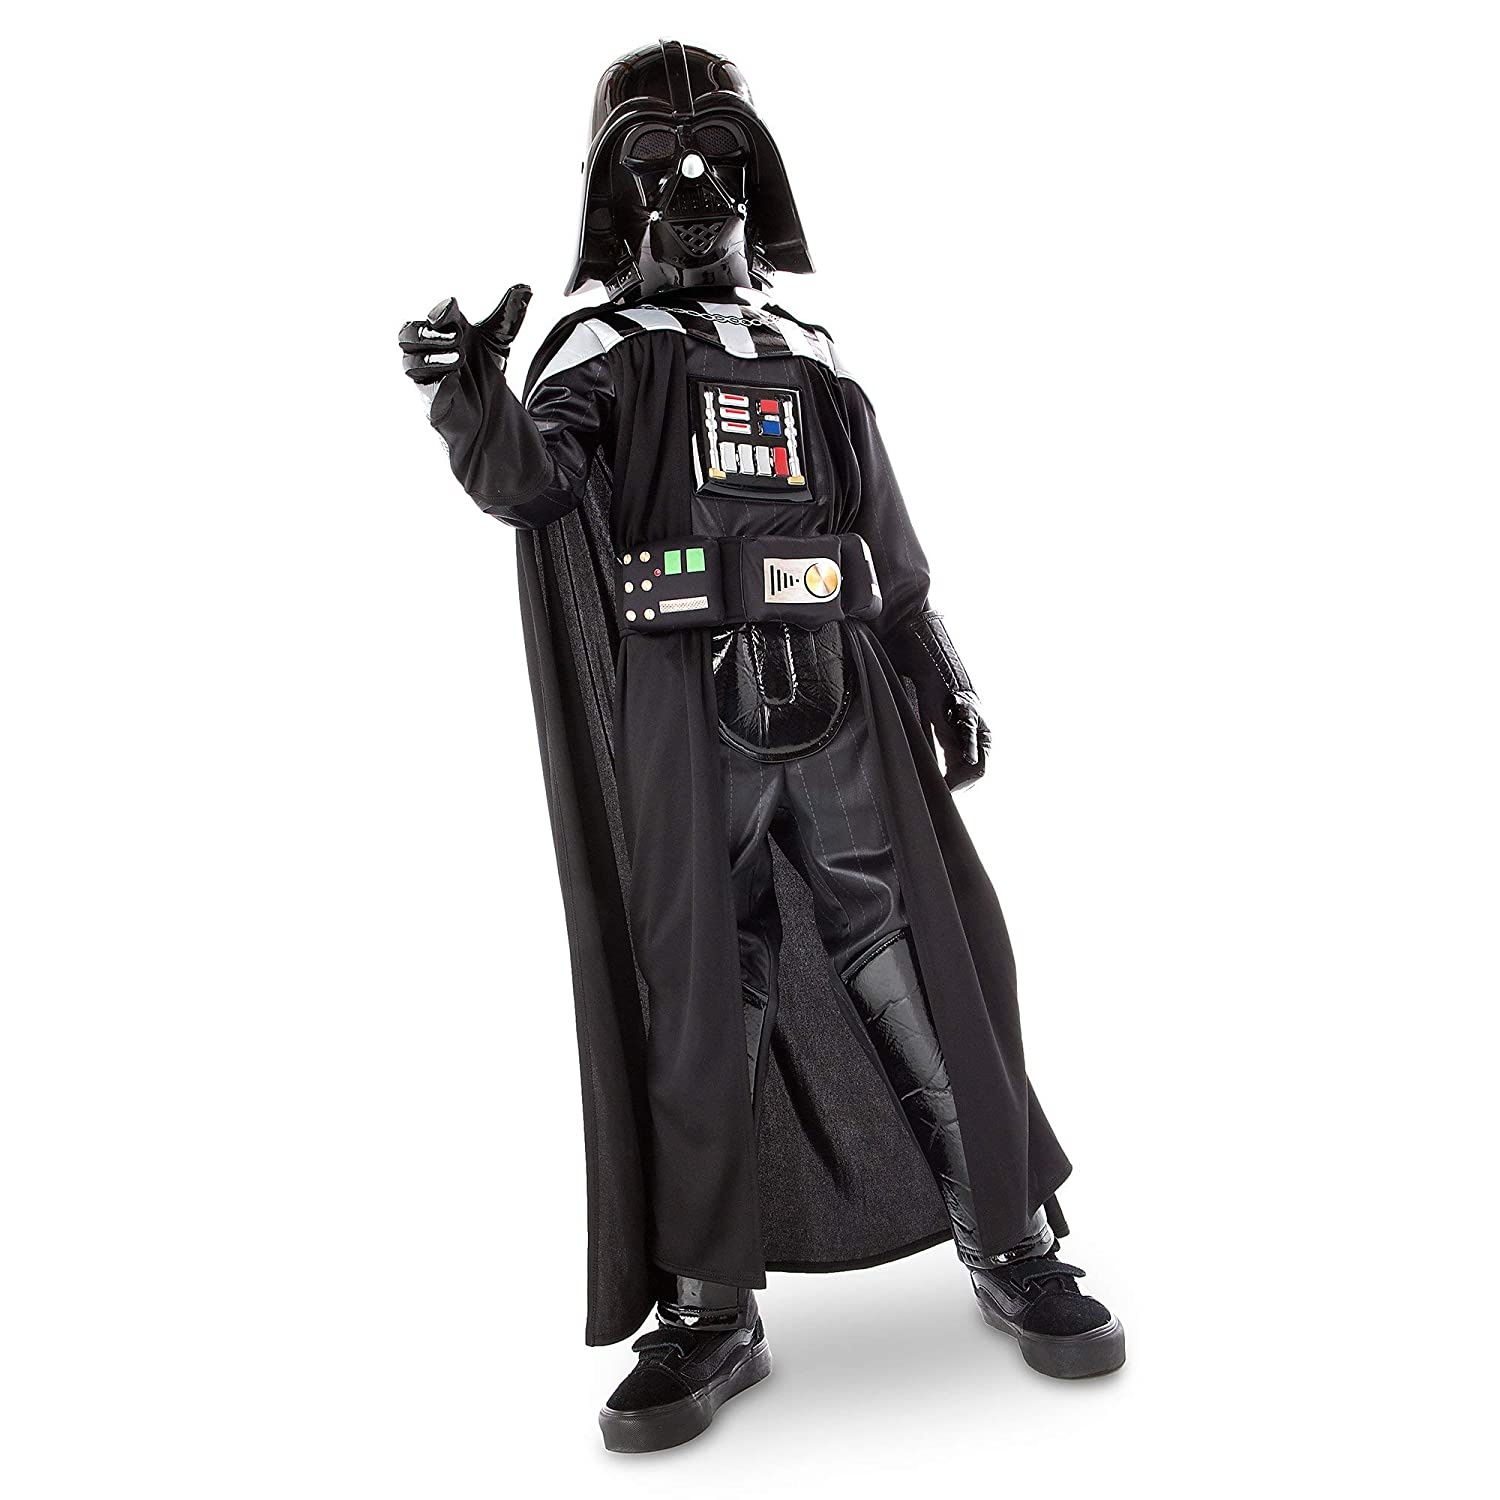 a6f795747 Amazon.com: Star Wars Darth Vader Costume with Sound for Kids Size 7/8 Black:  Clothing